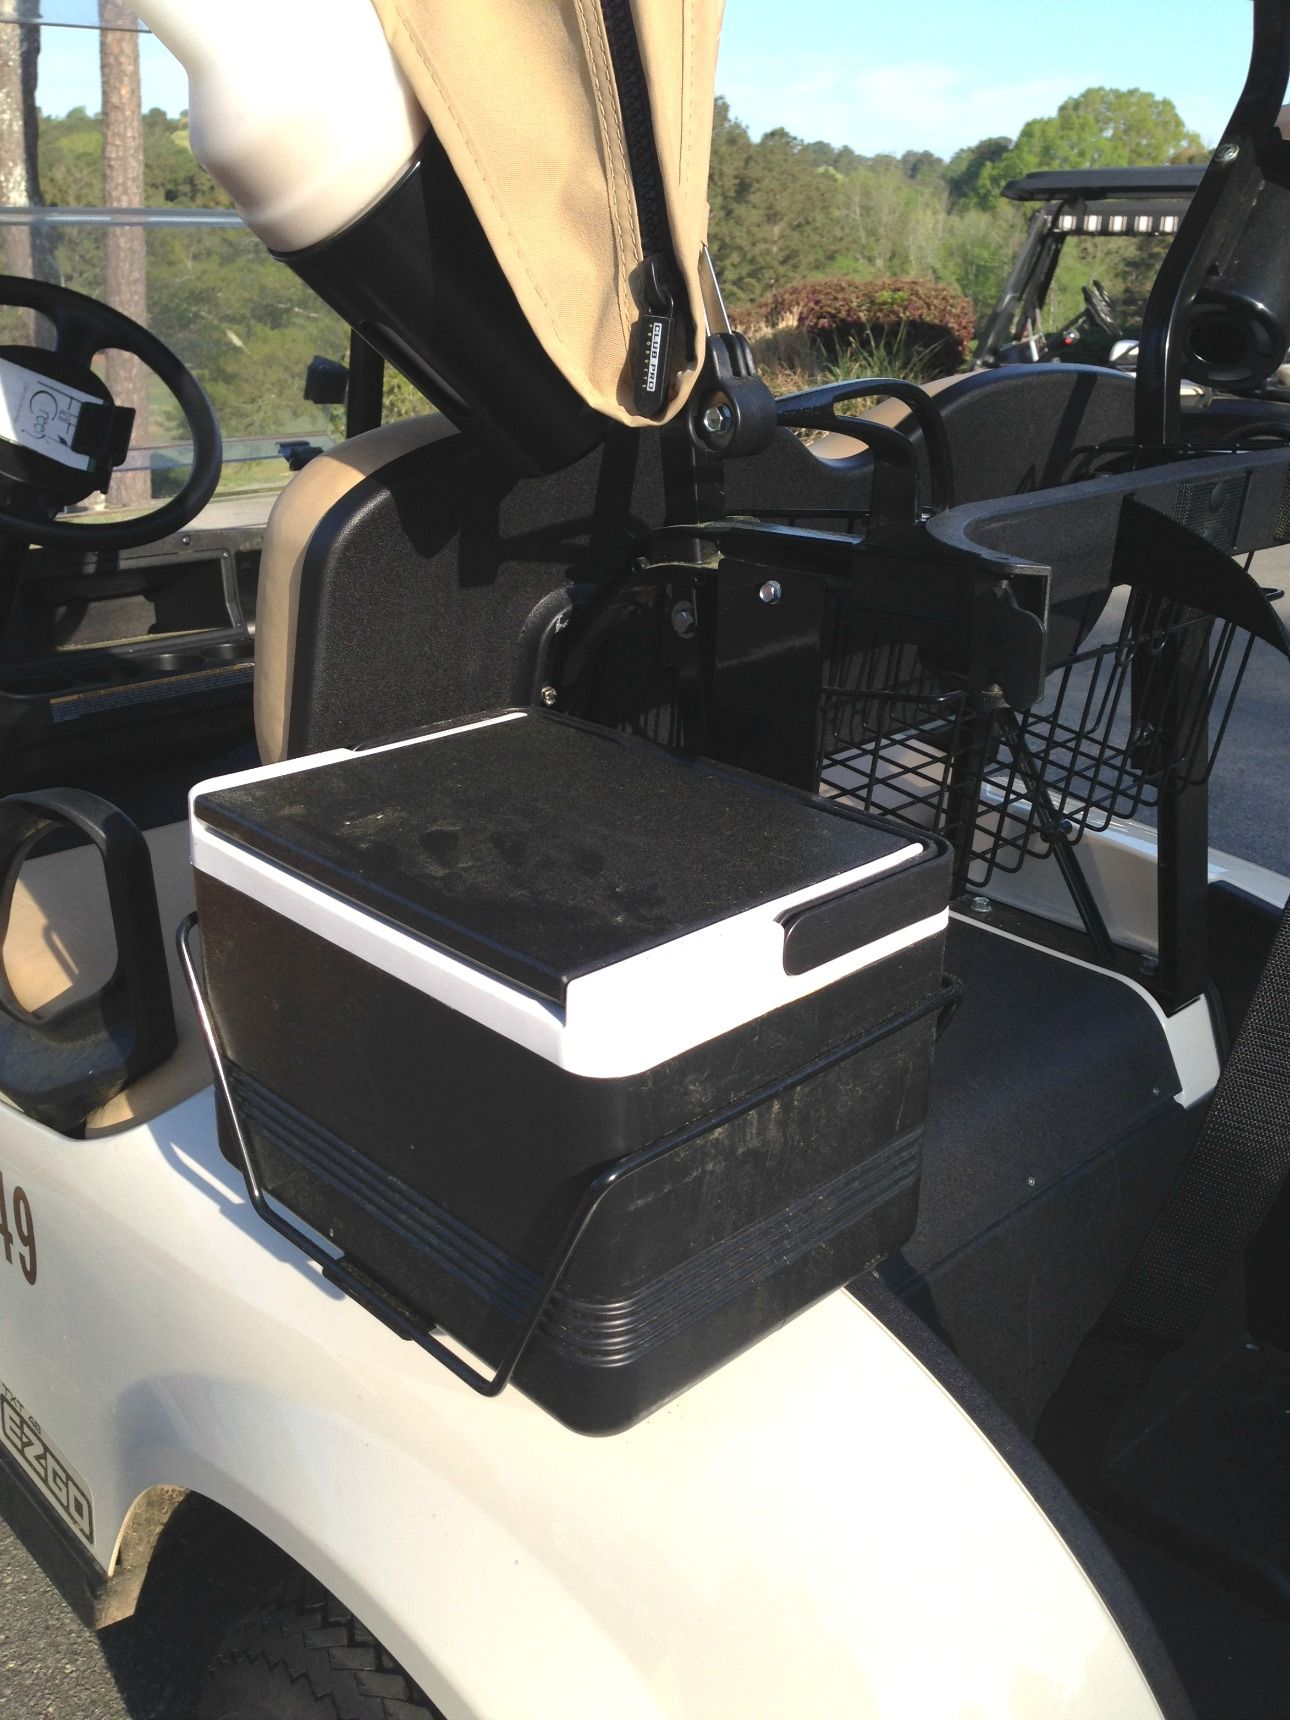 2005 ezgo txt wiring diagram yamaha golf carts oklahoma cart accessories for style comfort